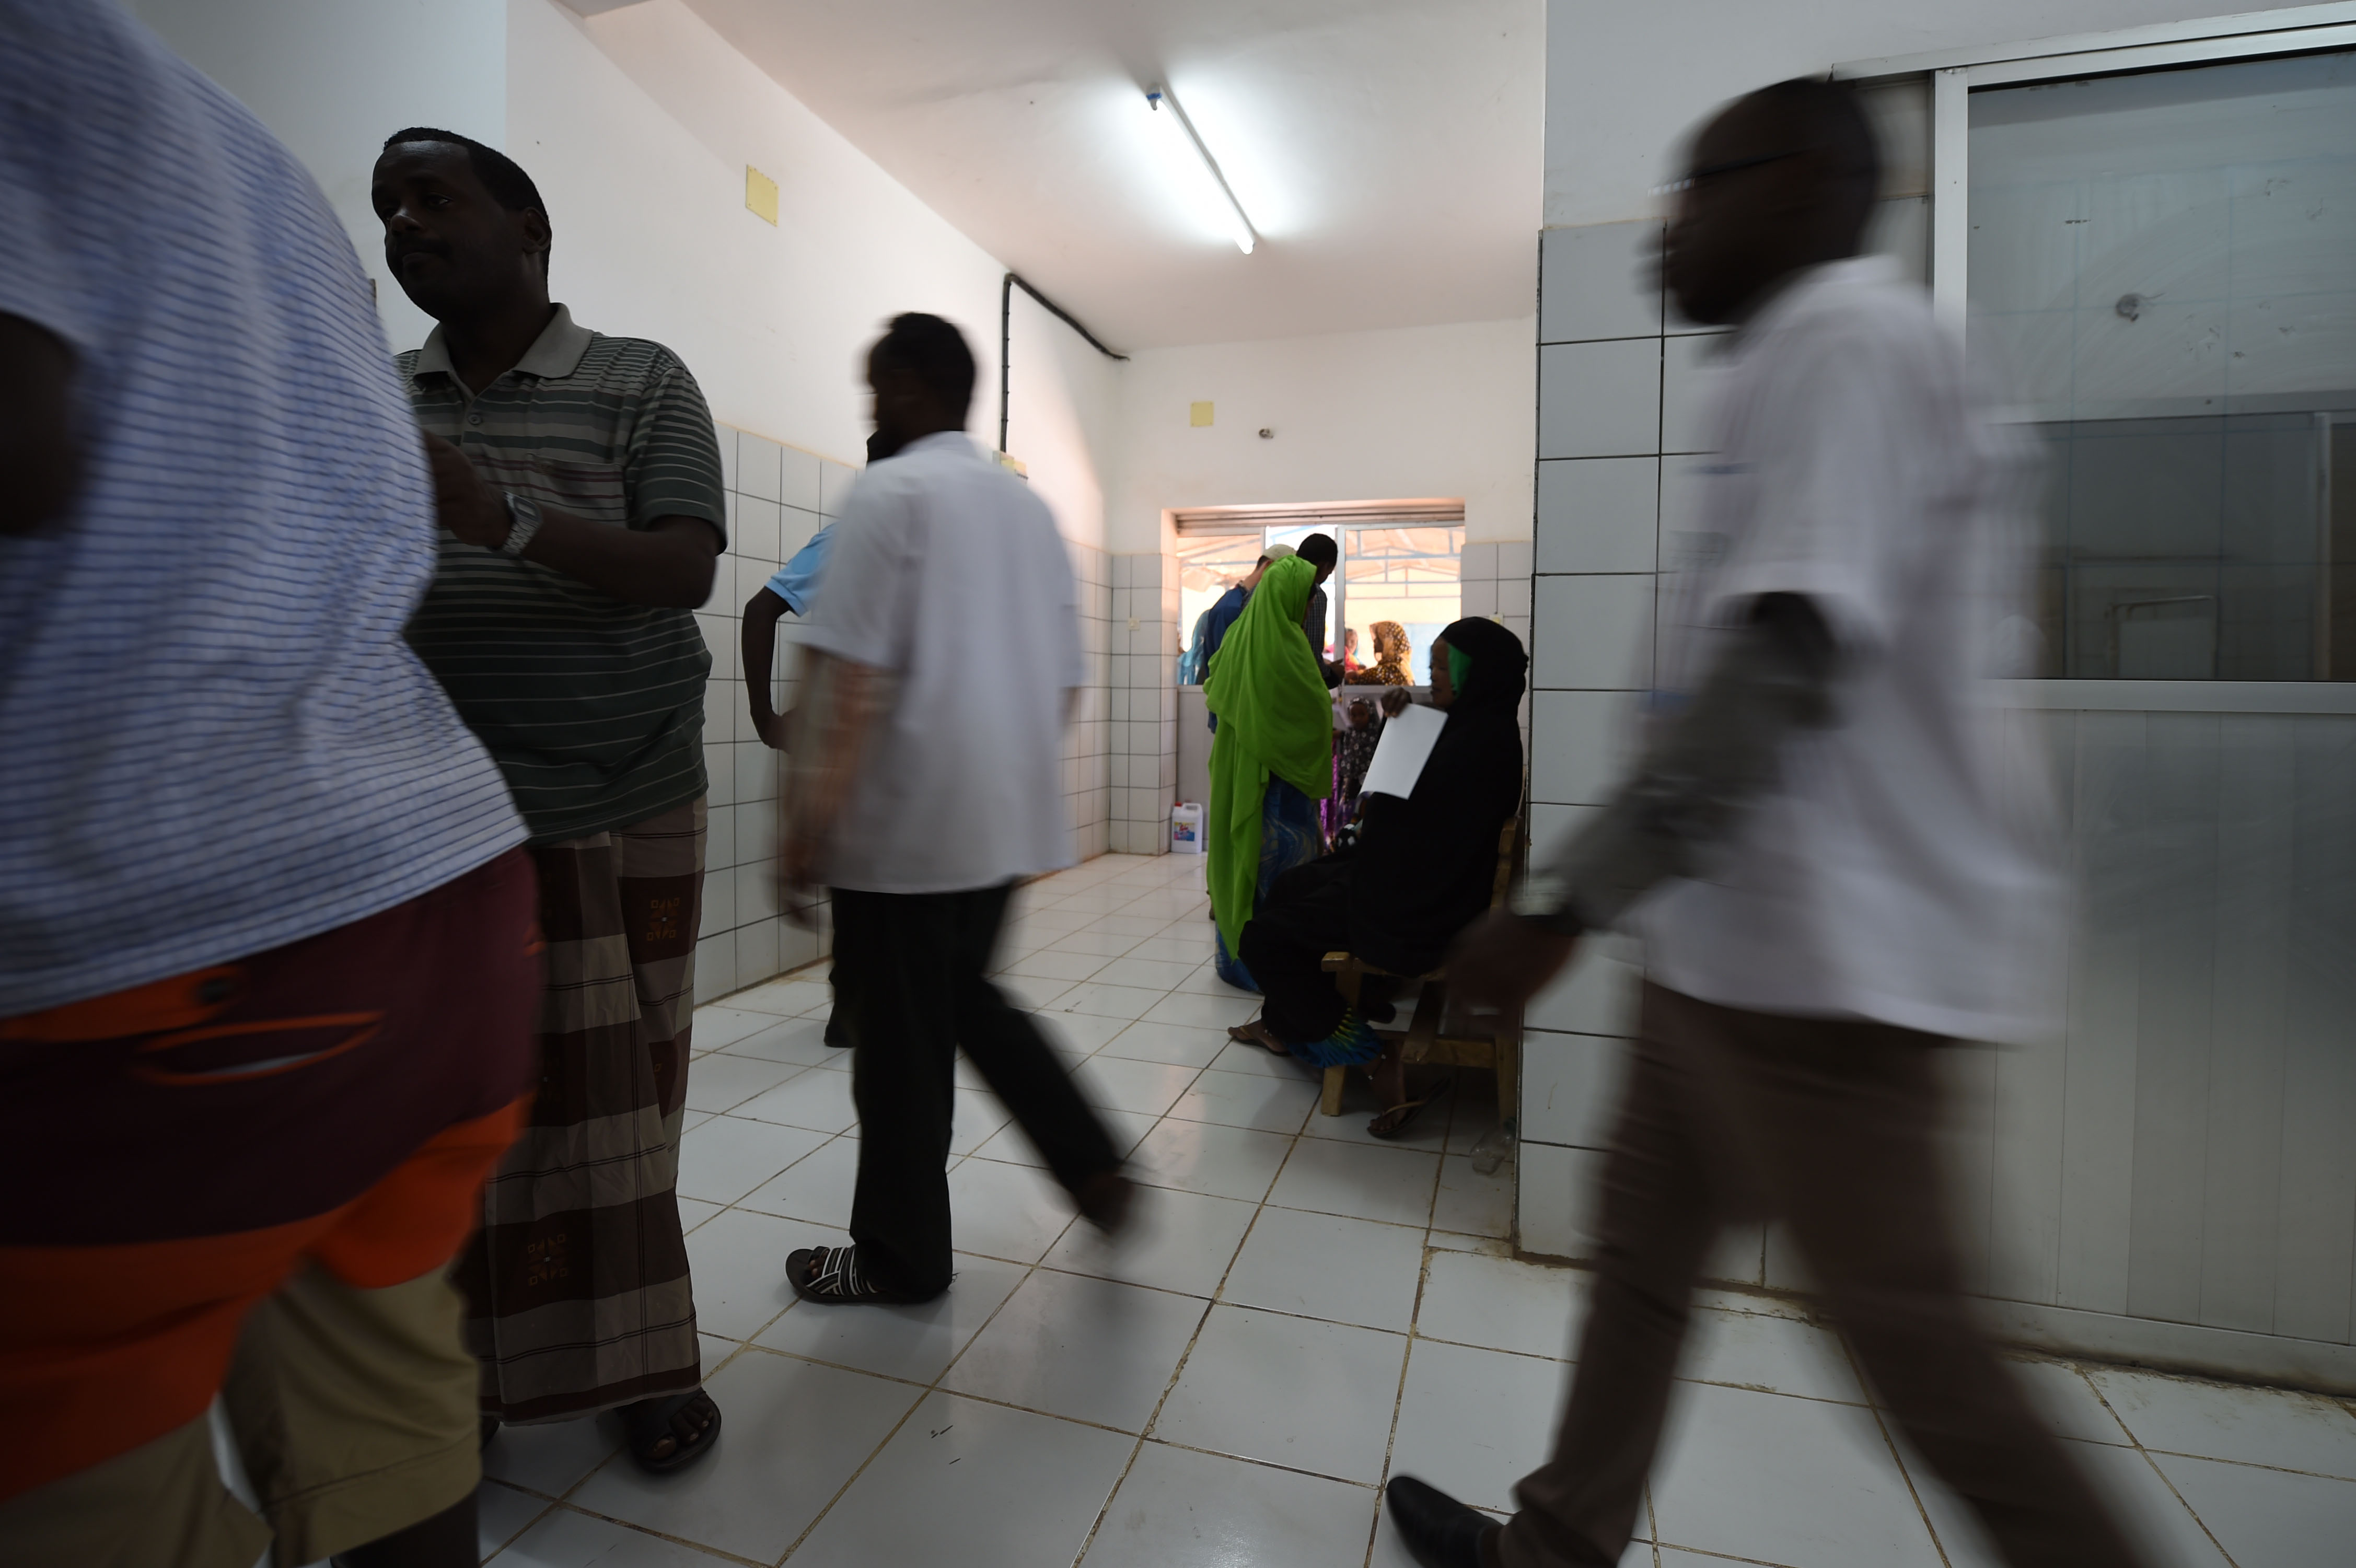 DIKHIL, Djibouti – Members from the 403rd Civil Affairs Battalion, Djibouti Ministry of Health and Cuban medical personnel work together to treat approximately 119 people during the two-day medical civic action program at Dikhil, Djibouti, May 11, 2016. The medical teams spent a total of 10 hours with patients treating a variety of illnesses with women, children and men of all ages. (U.S. Air Force photo by Staff Sgt. Tiffany DeNault)